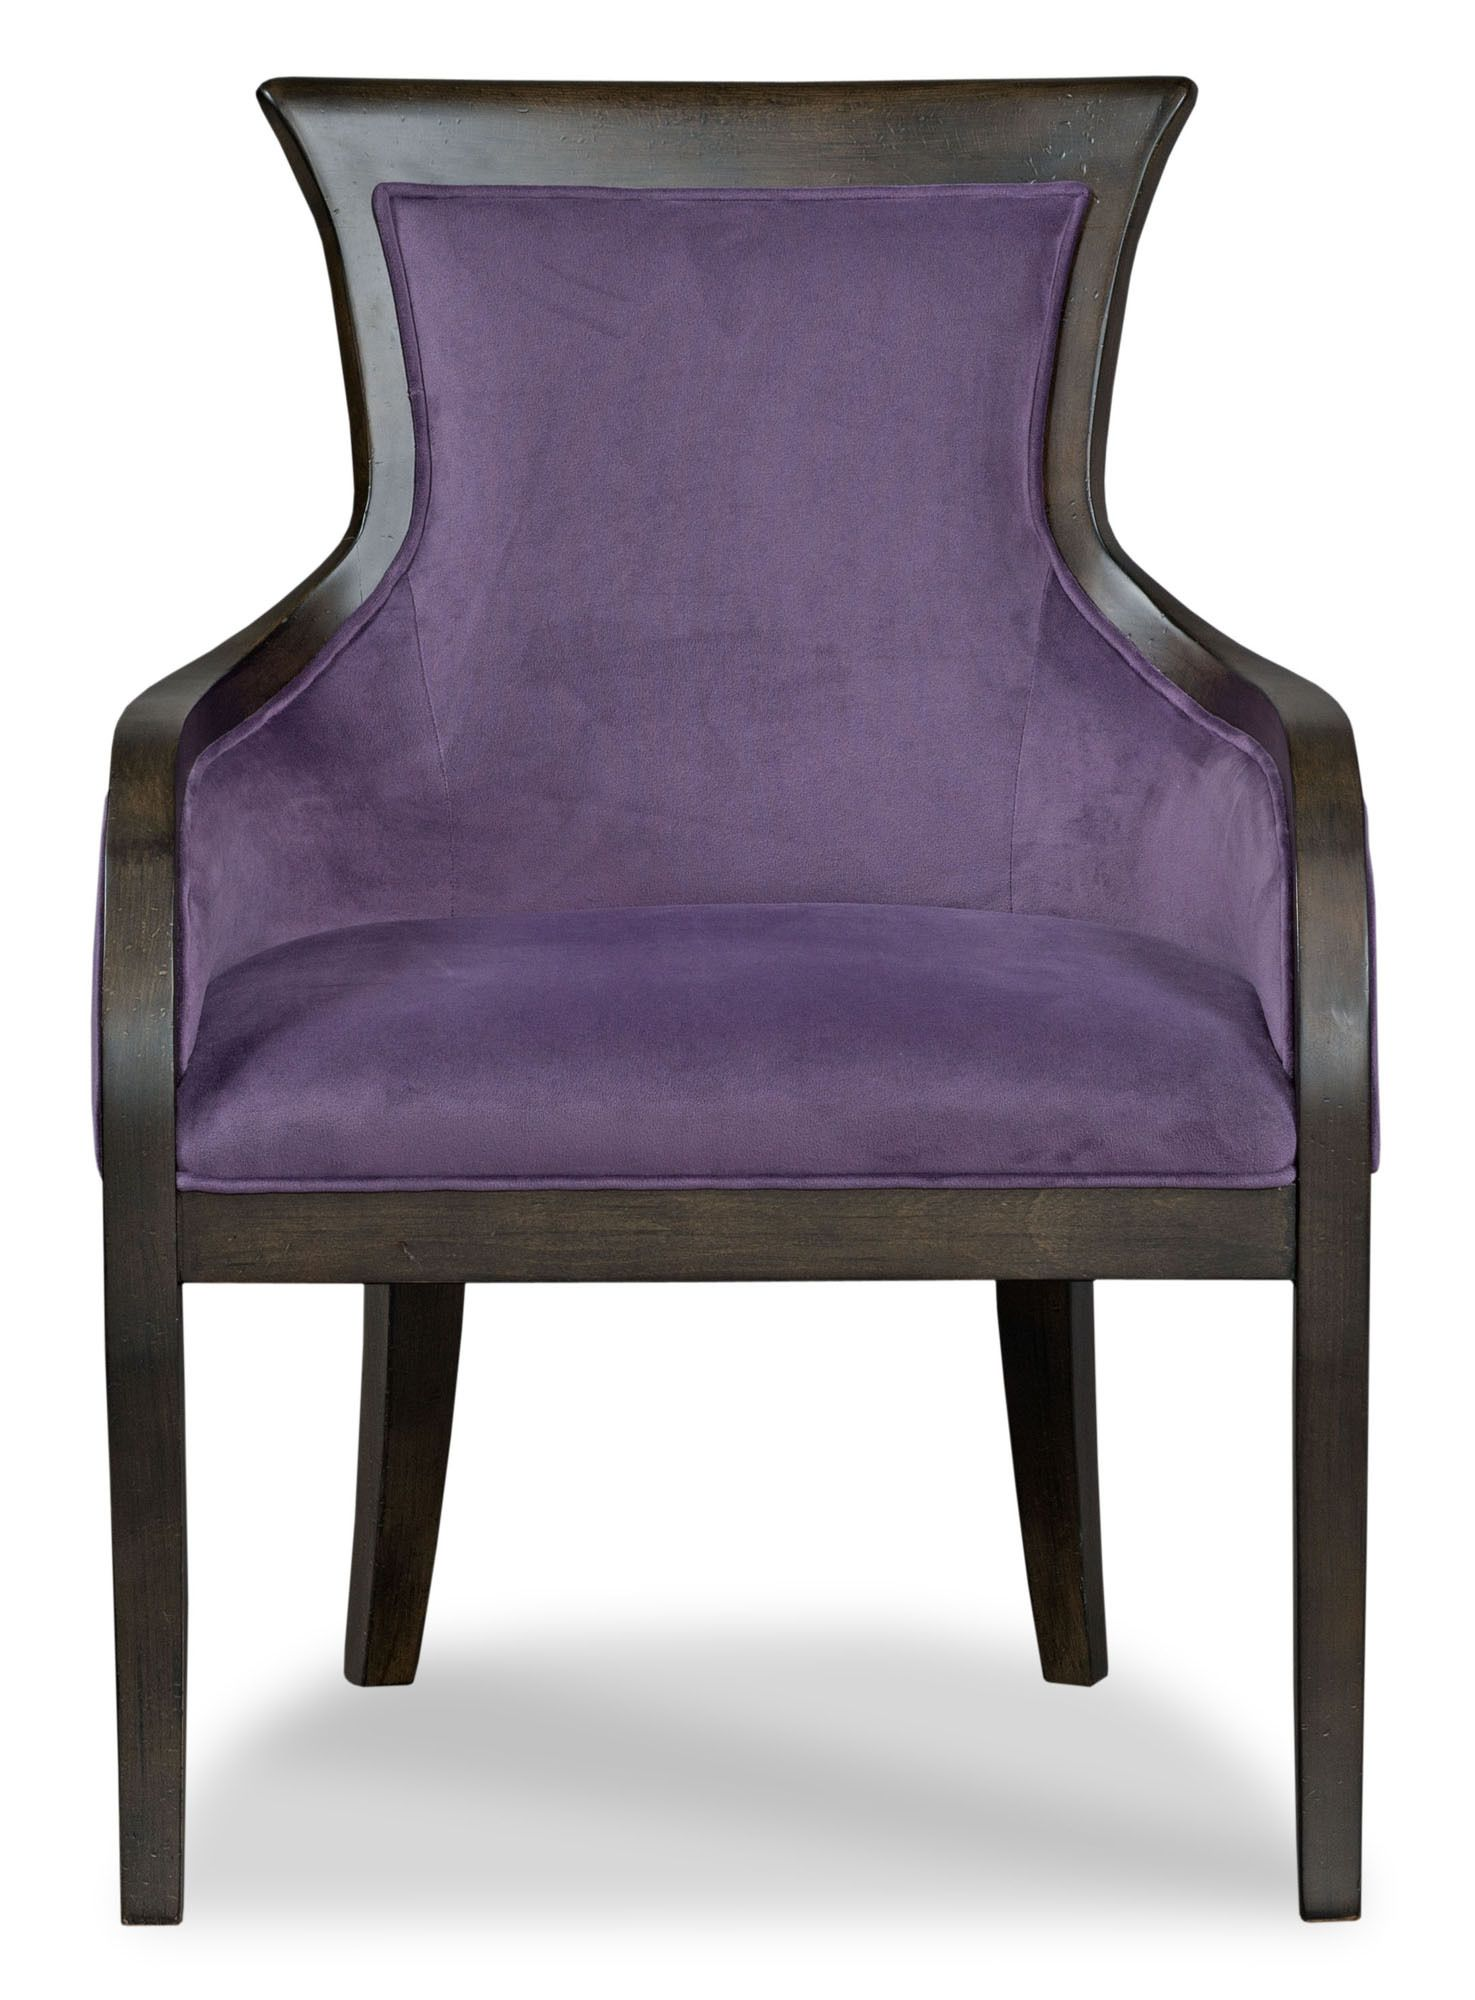 Auburn Occasional Chair | Fairfield Chair Company | Home Gallery Stores